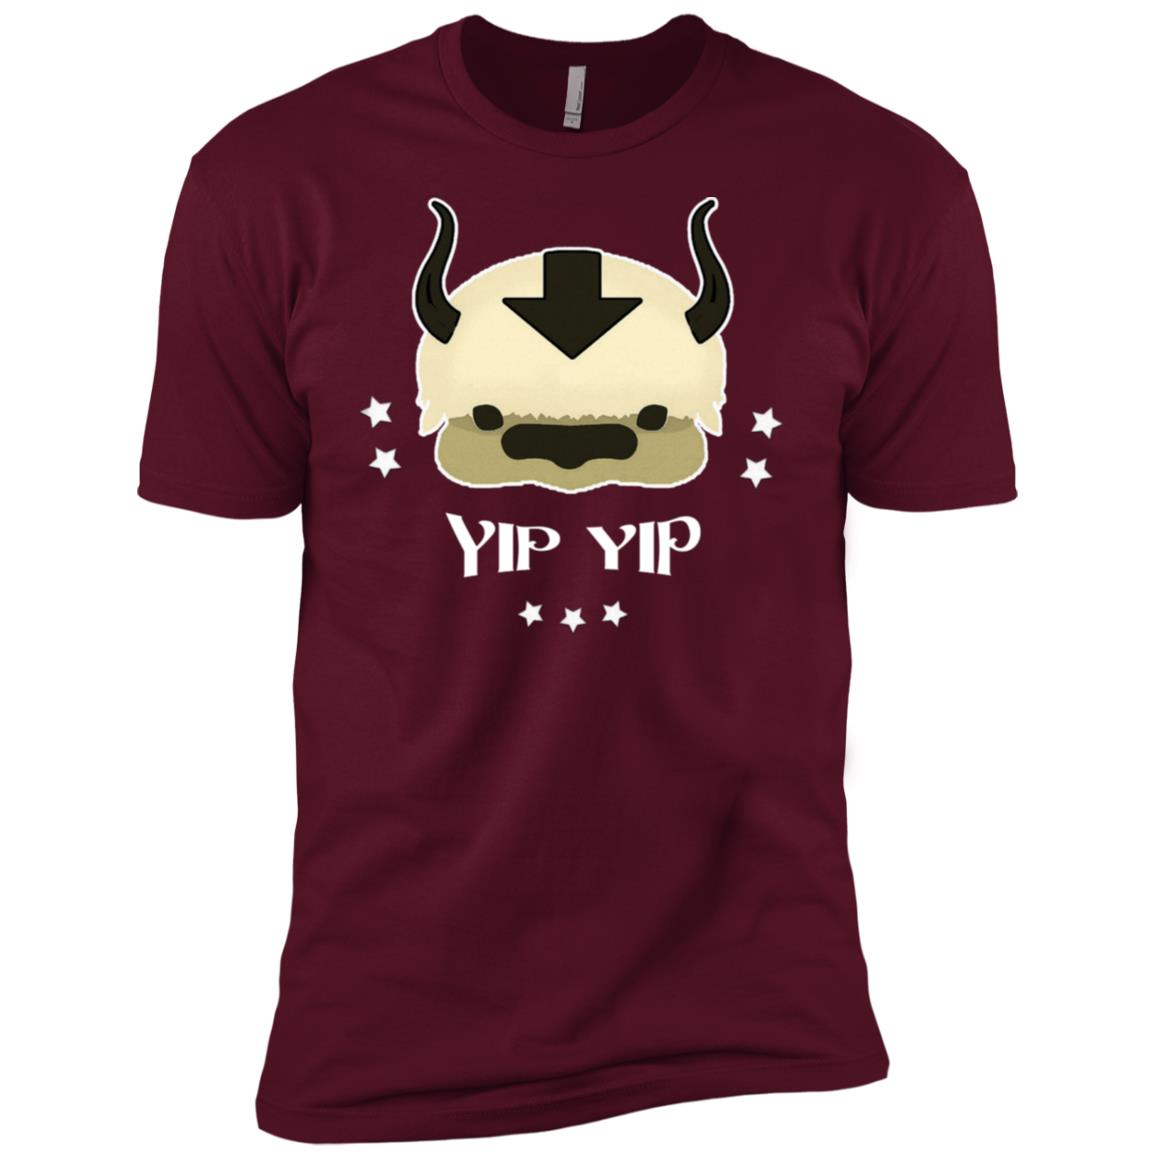 Pro Yip Yip Appa Men Short Sleeve T-Shirt